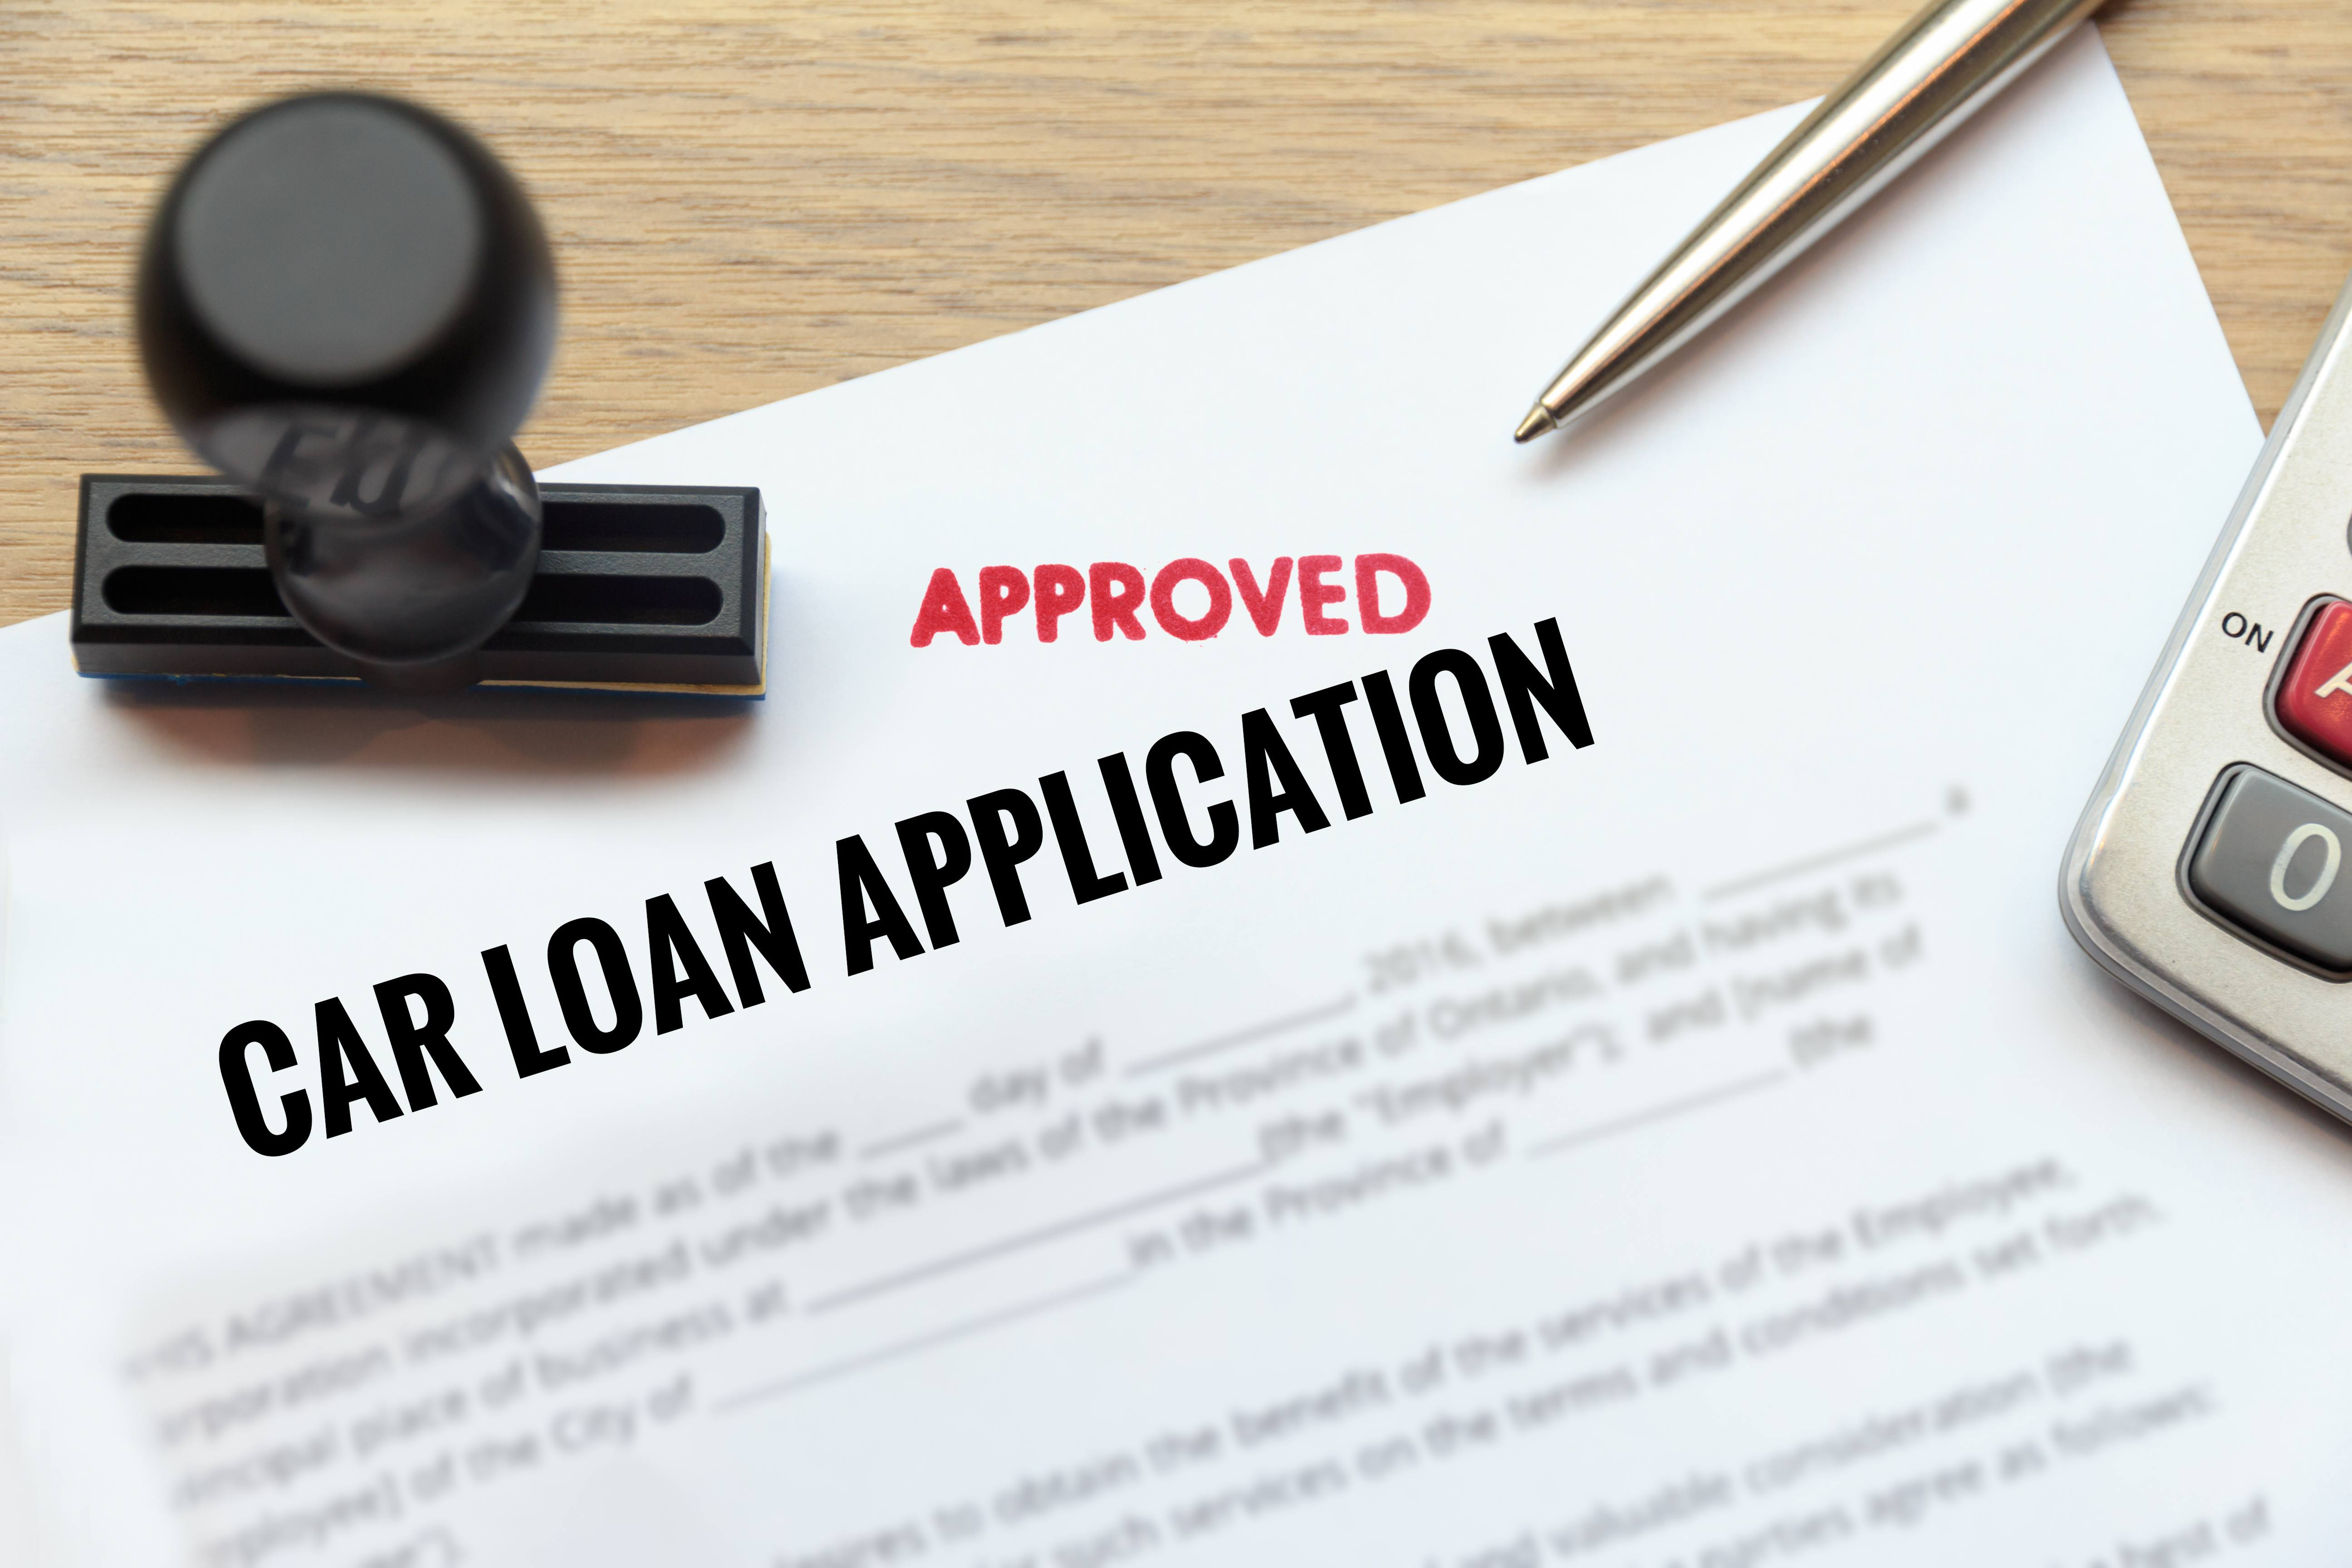 Approved Car Loan